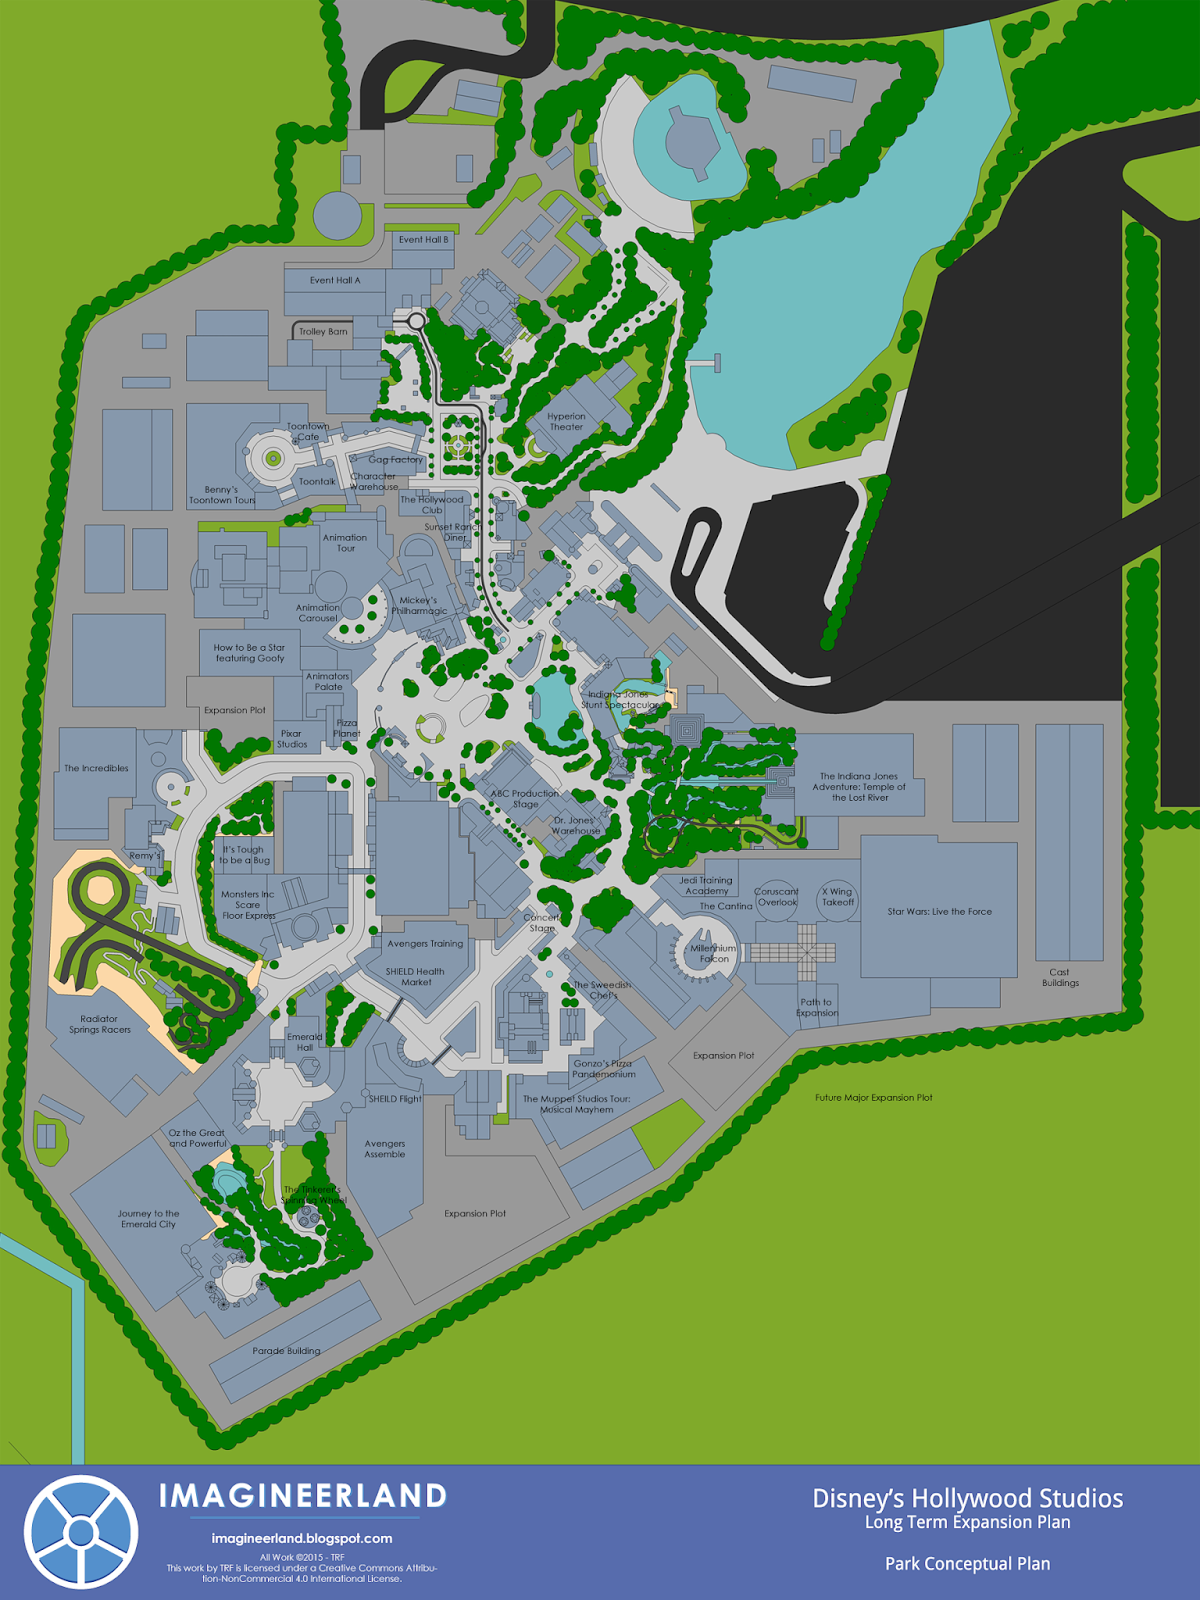 Imagineerland Disney 39 s Hollywood Studios Park Plan